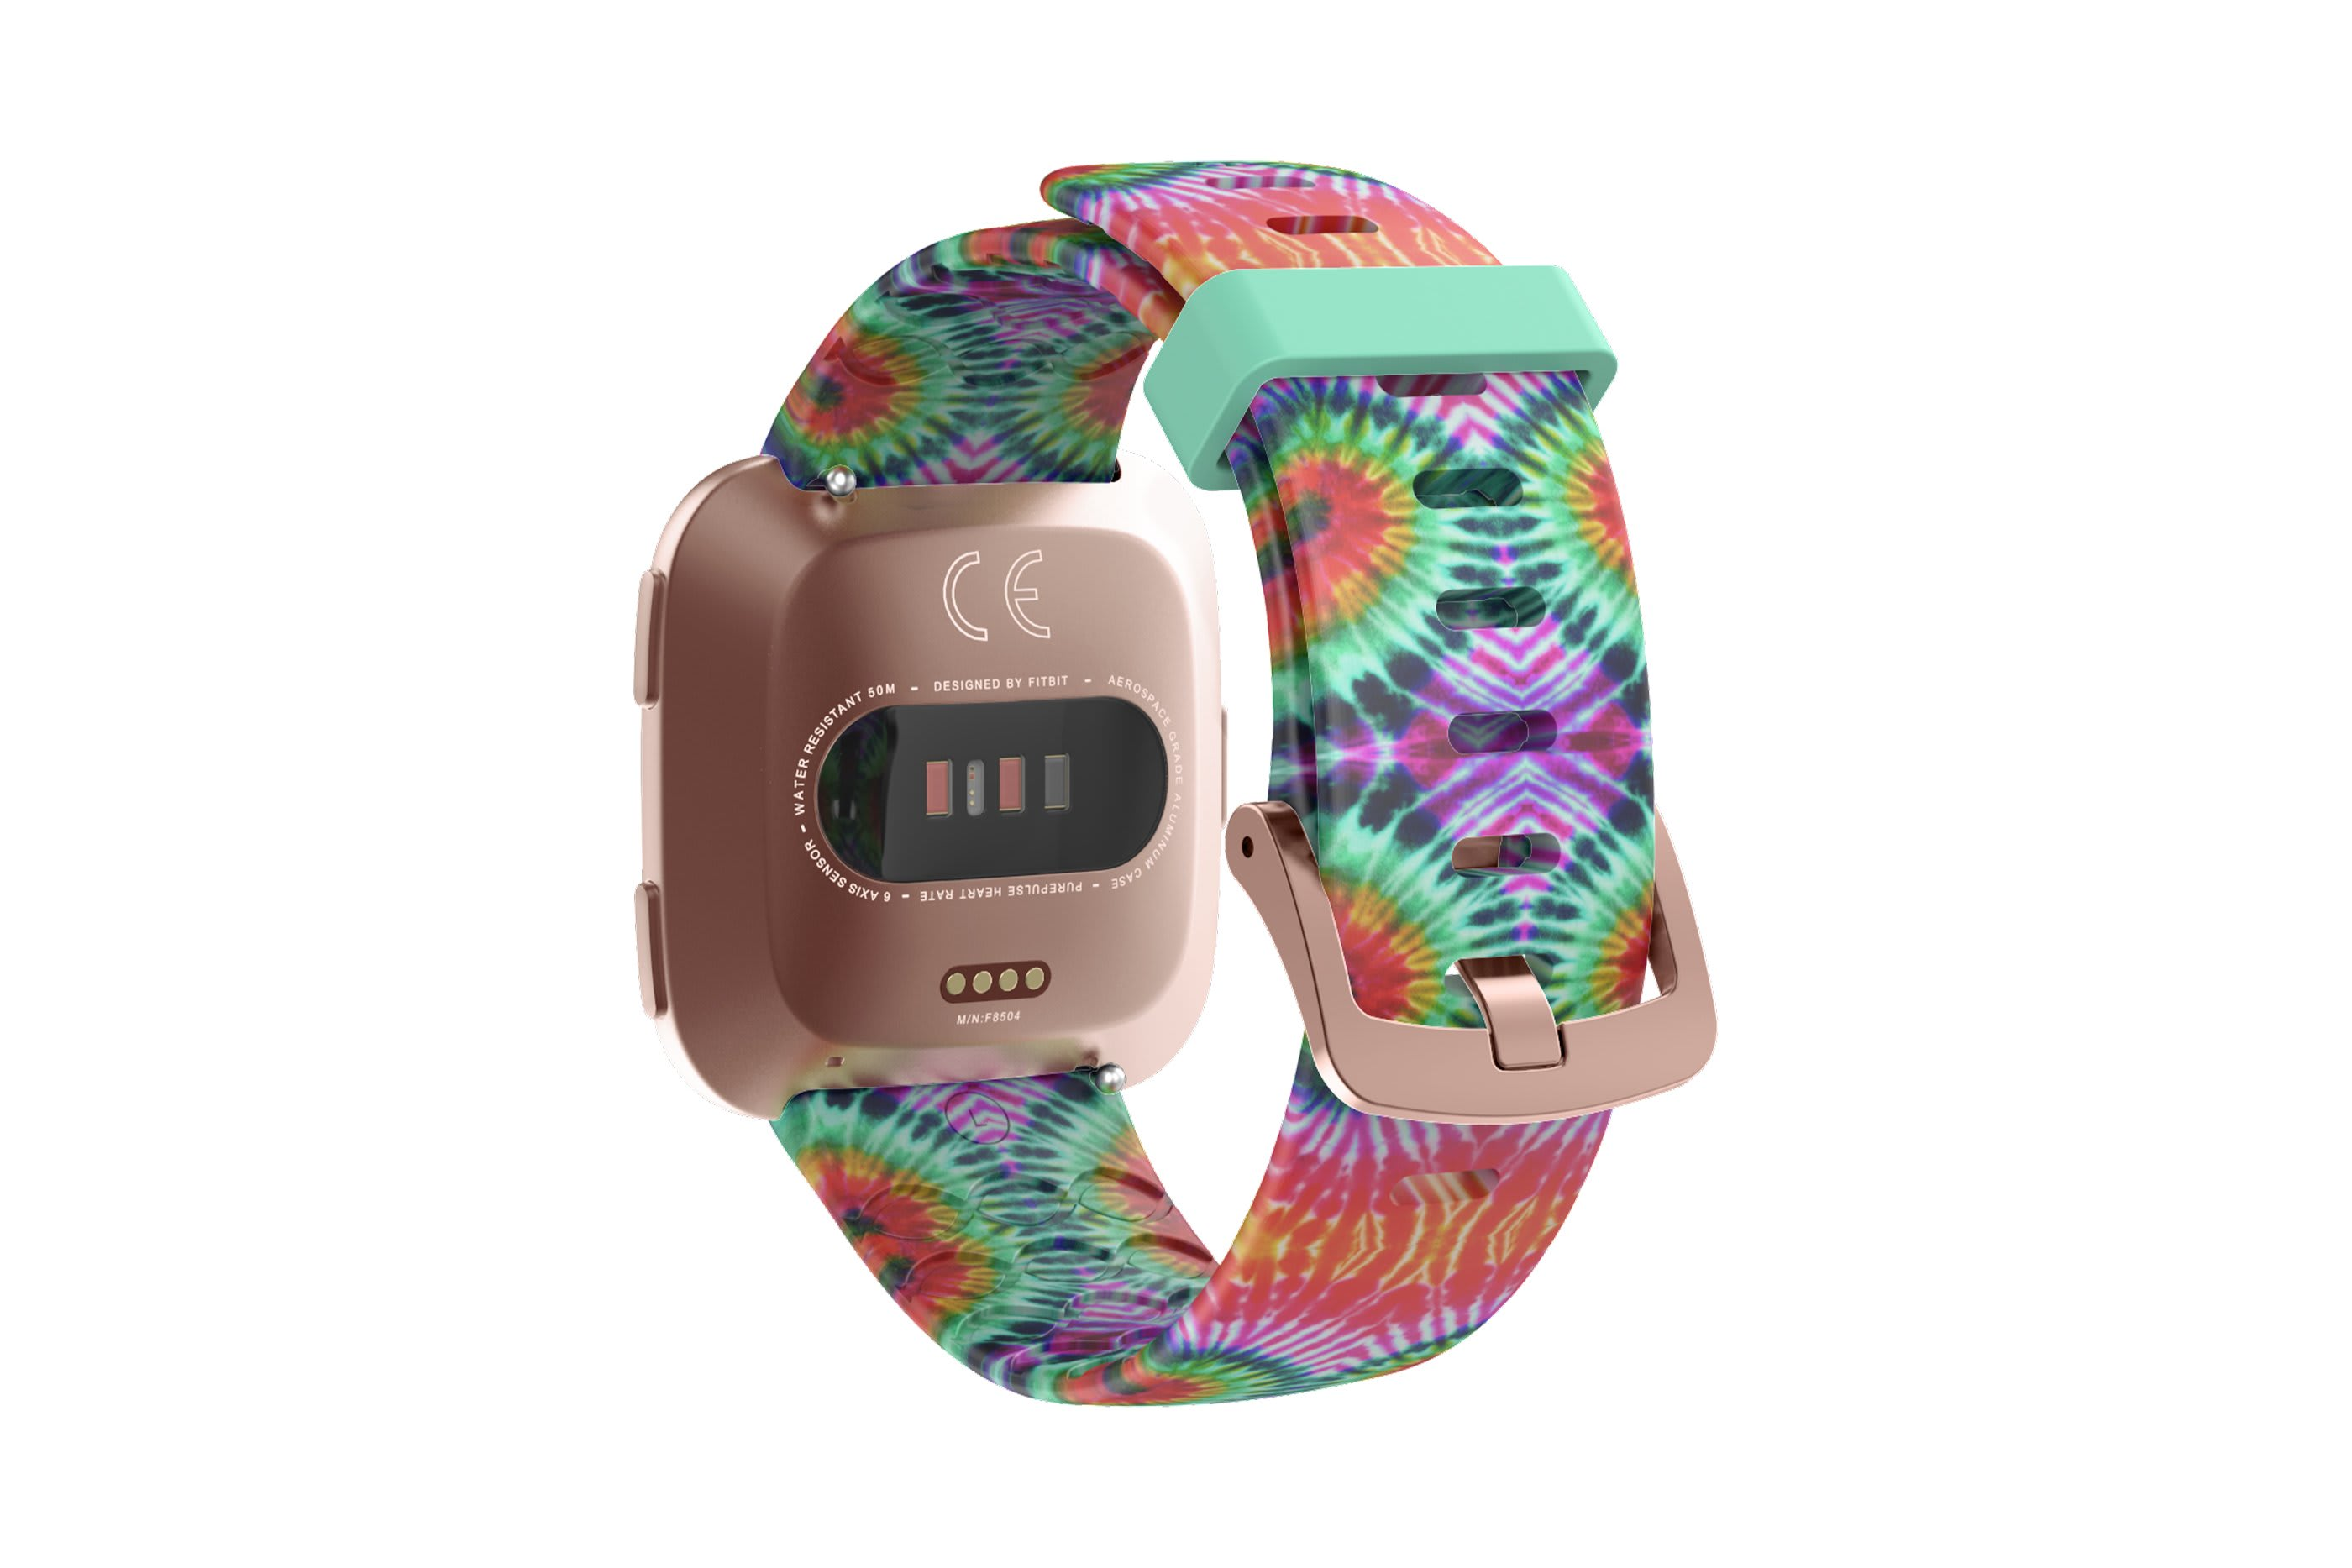 Gypsy Eyes fitbit versa watch band with rose gold hardware viewed from top down